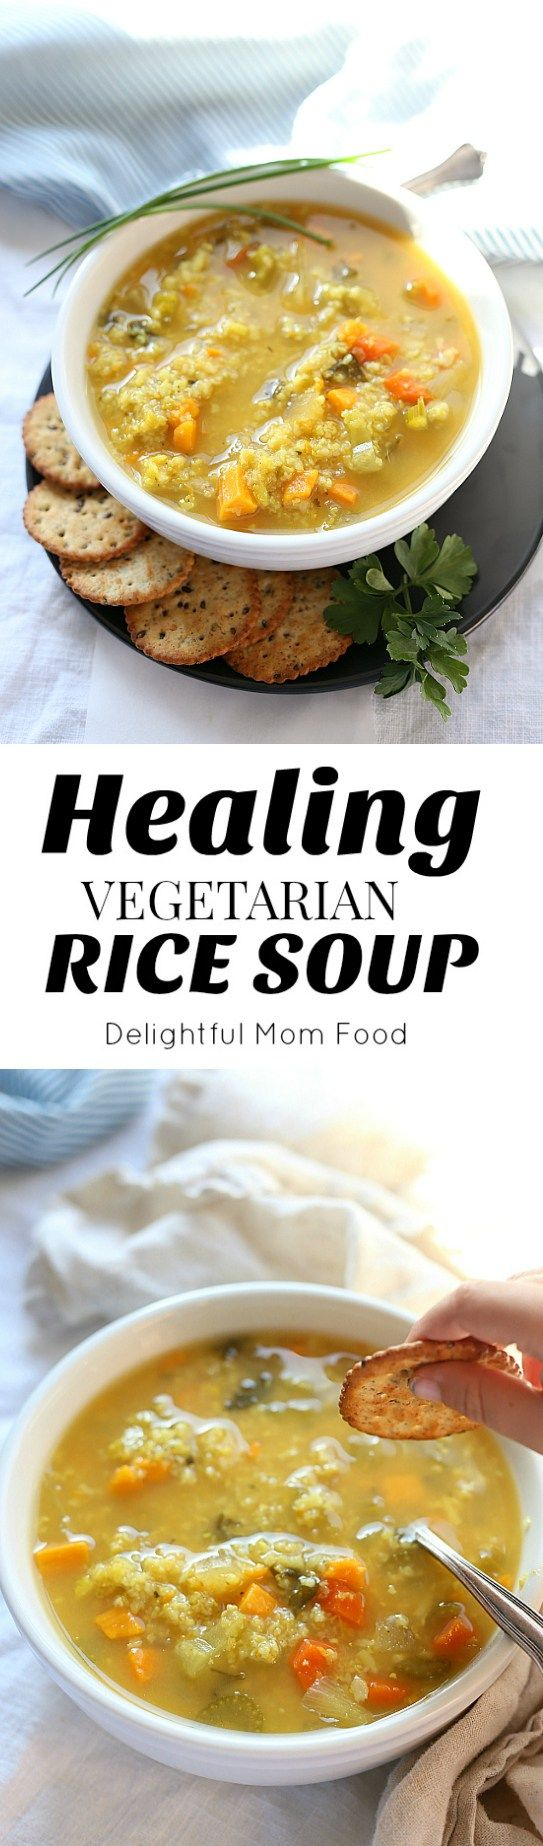 This hearty vegetarian crock pot rice soup recipe is theperfect food-for-your-soul! Made with vegetable broth or if you are not a vegetarianadd chicken for added protein! Delightful Mom Food #rice #soup #recipe #slowcooker #easy #healthy #vegetarian #vegetable